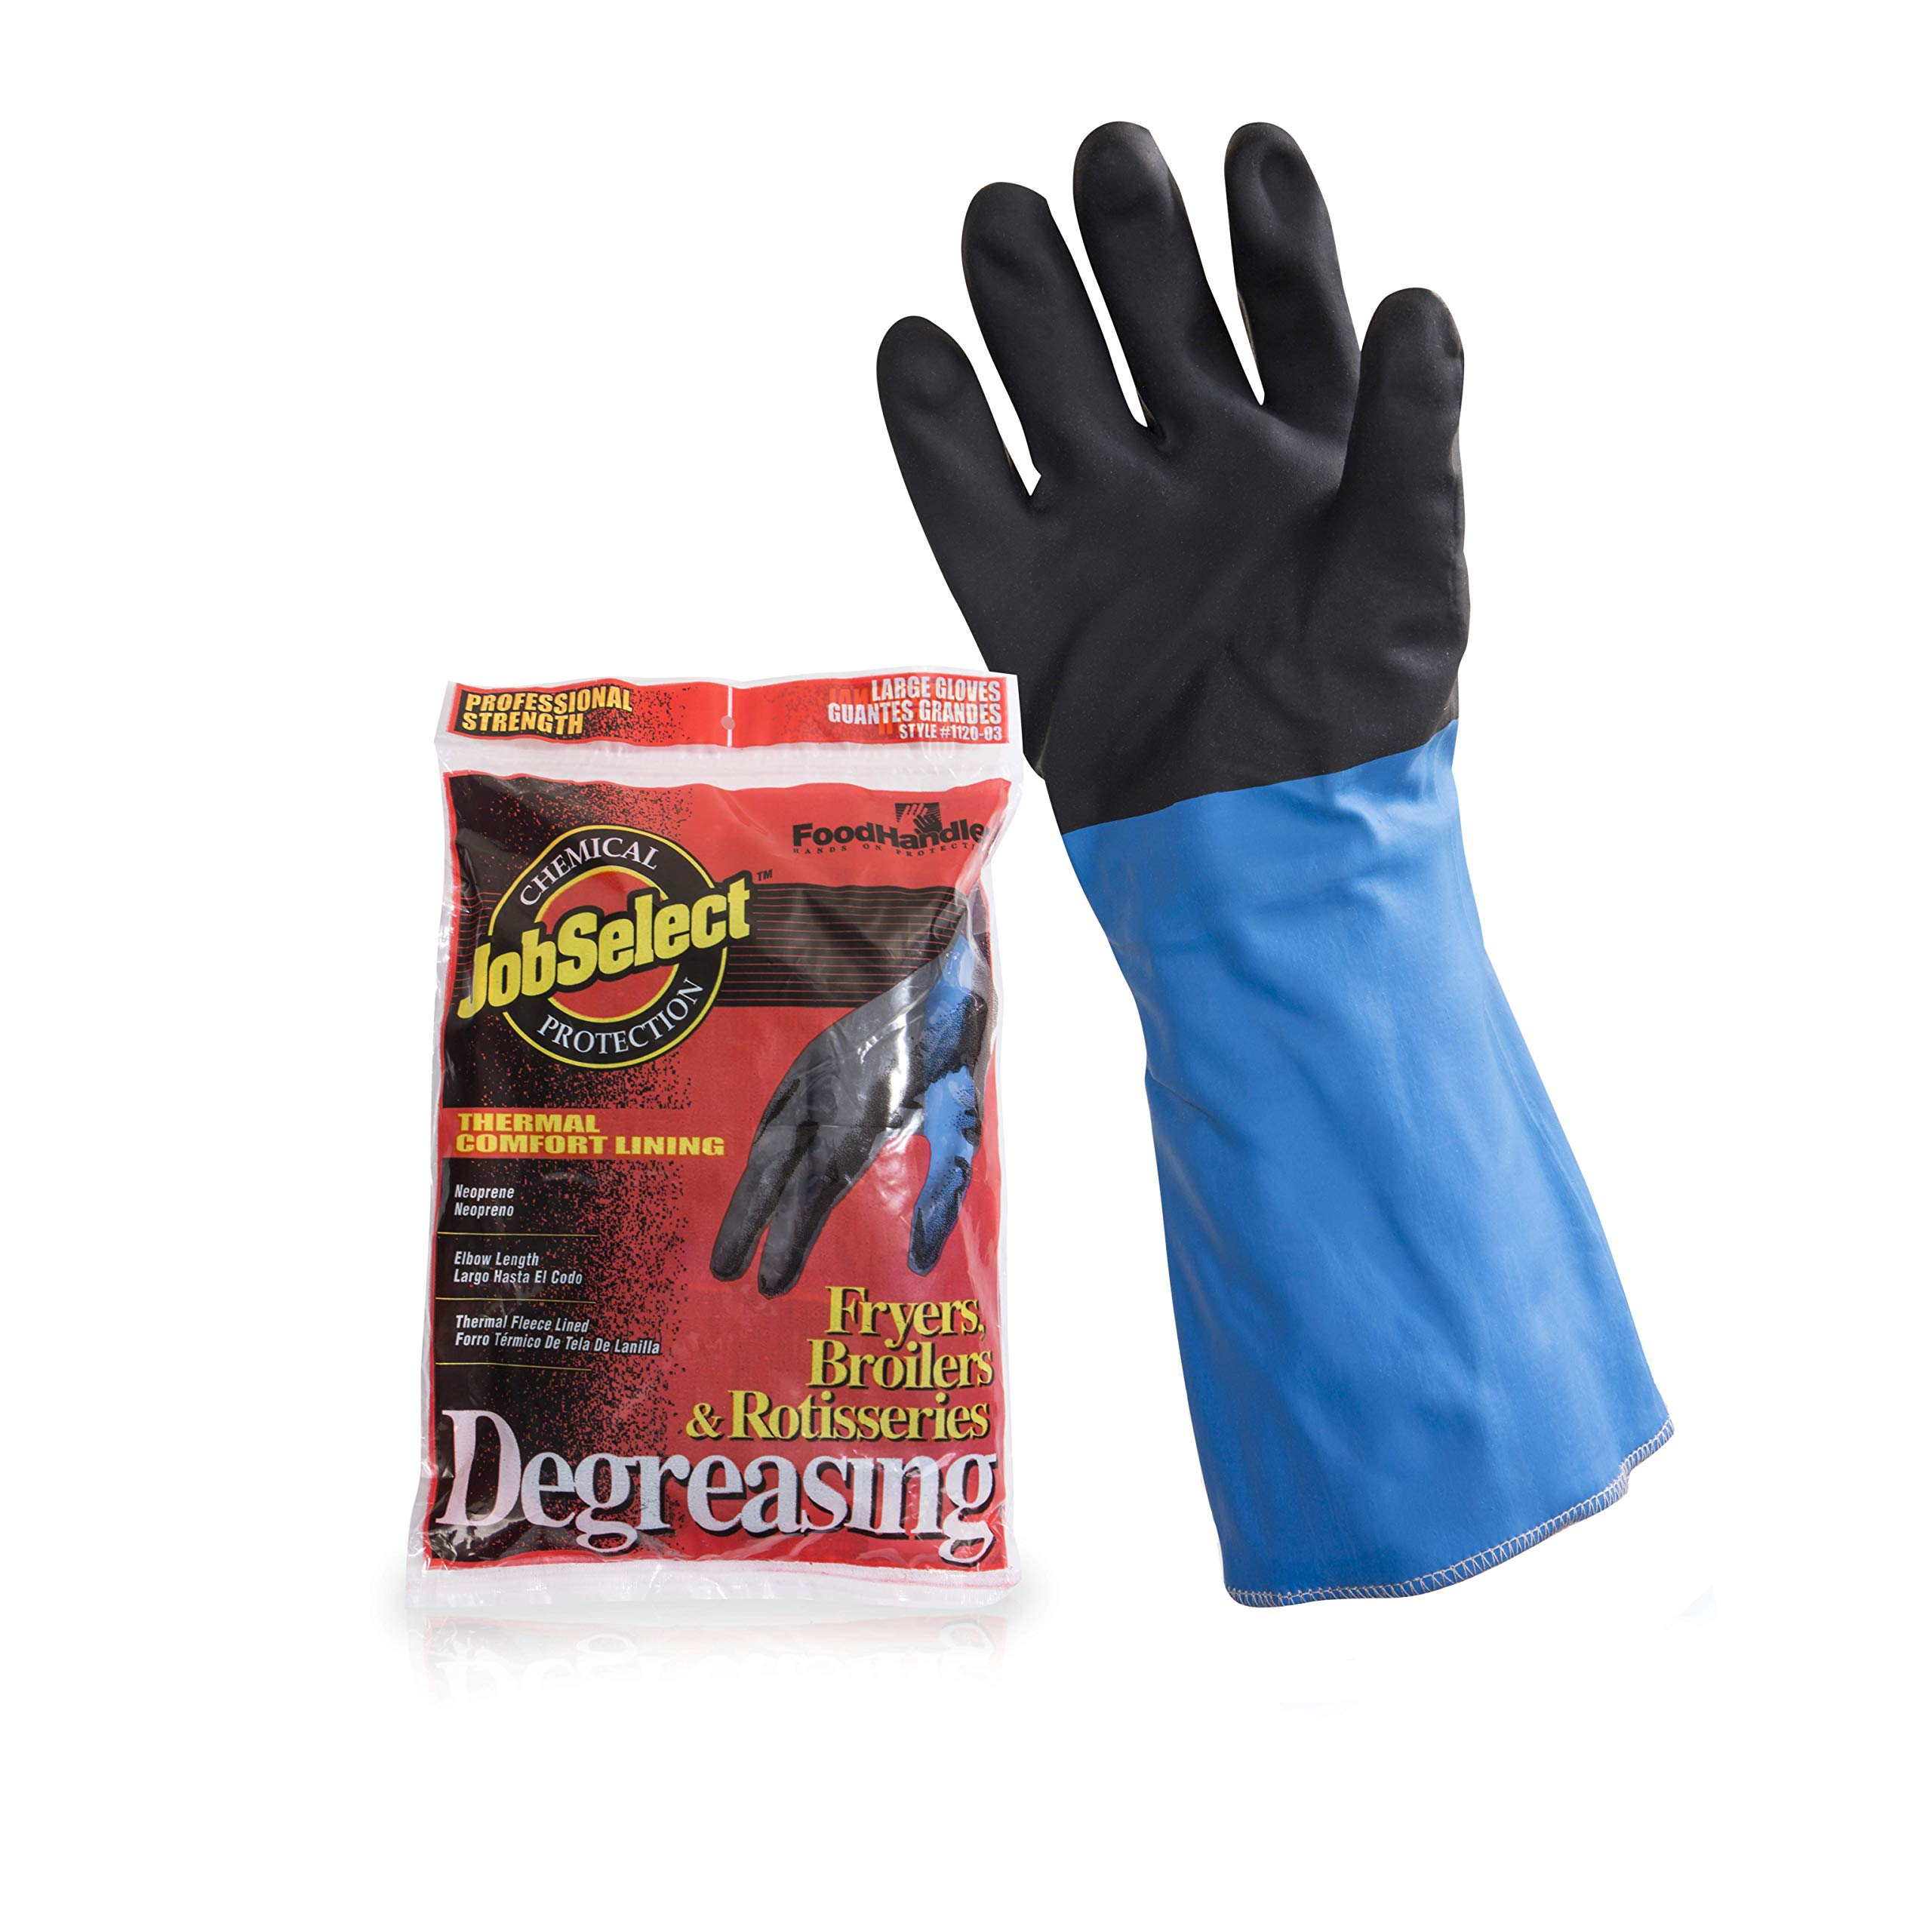 JobSelect 1120-03 JobSelect Degreasing, Neoprene, LG, Black/Blue (Pack of 8)